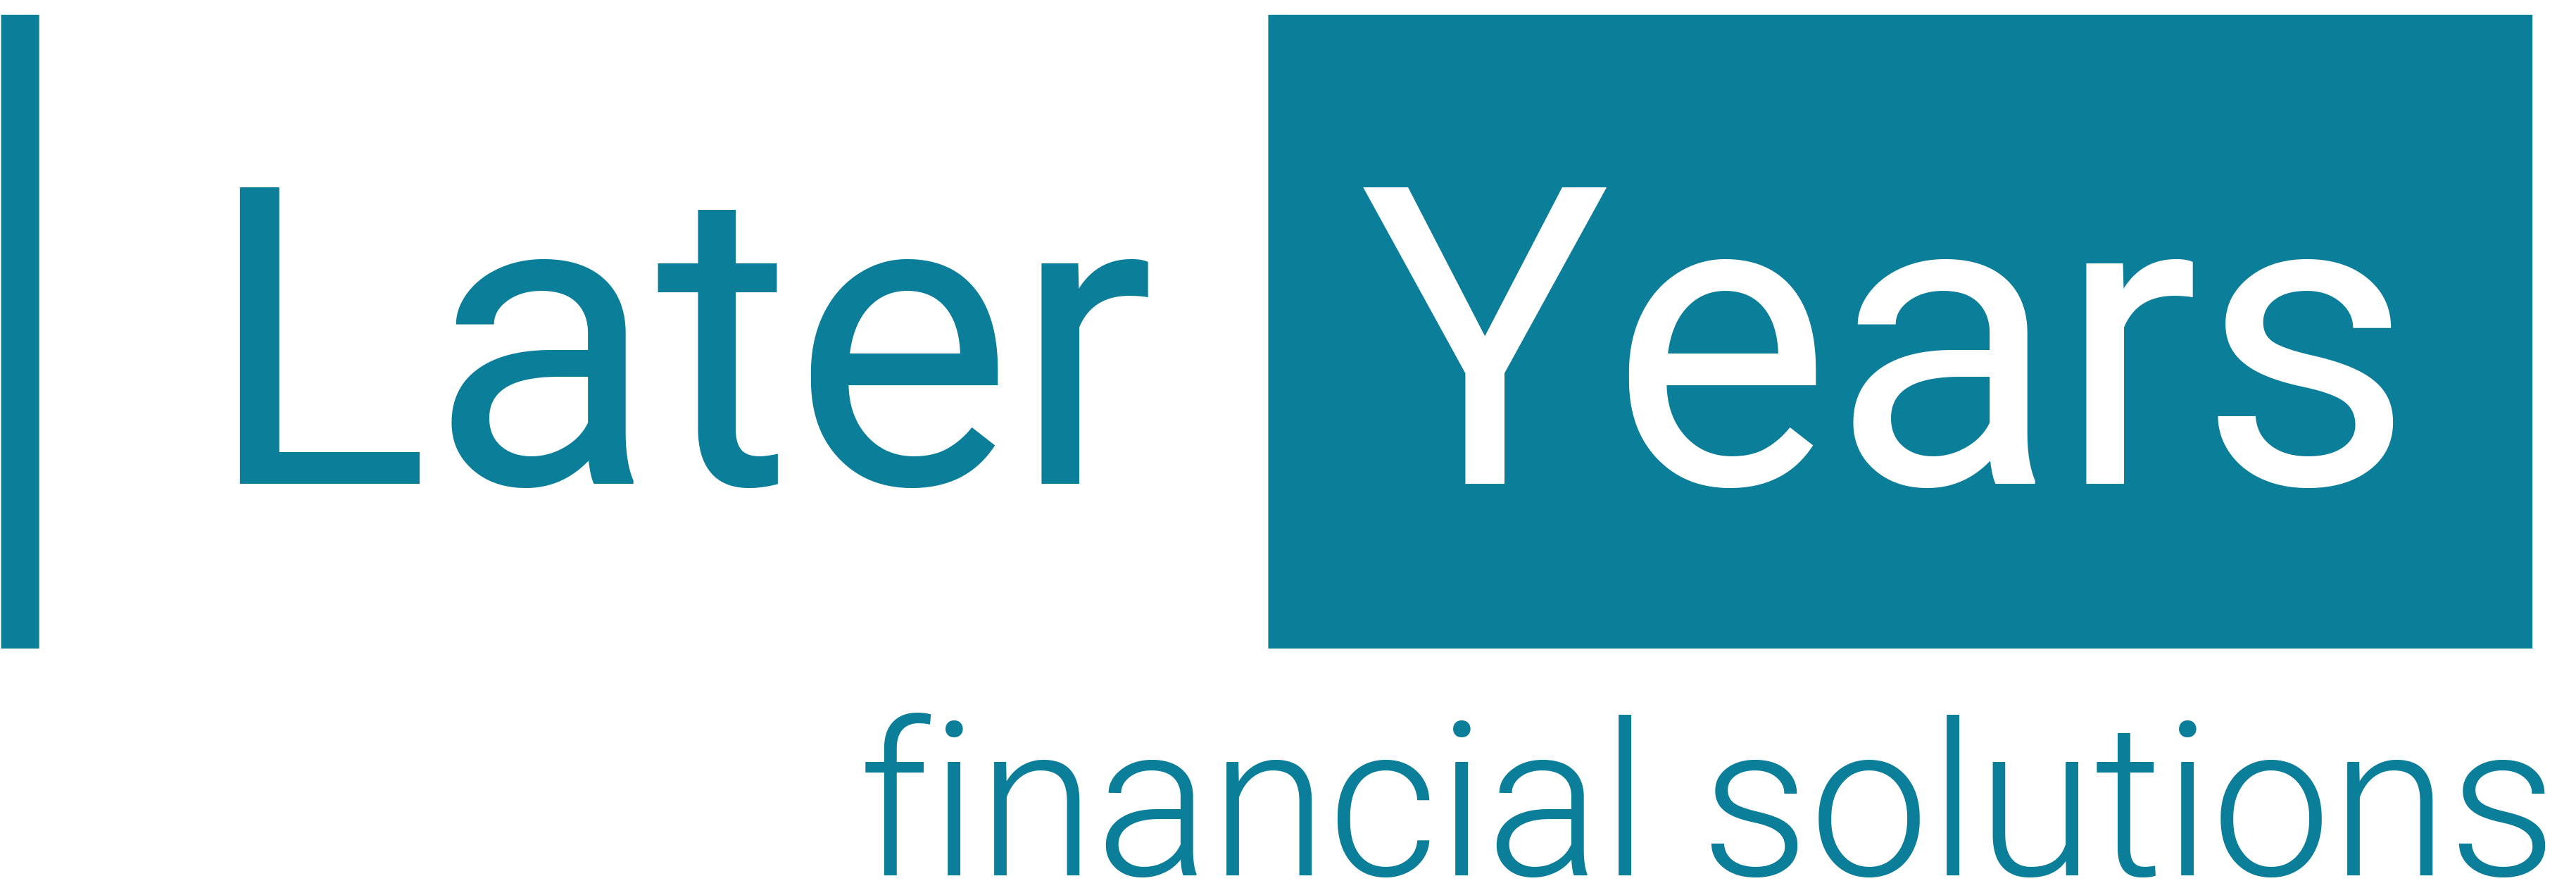 Later Years Financial Solutions